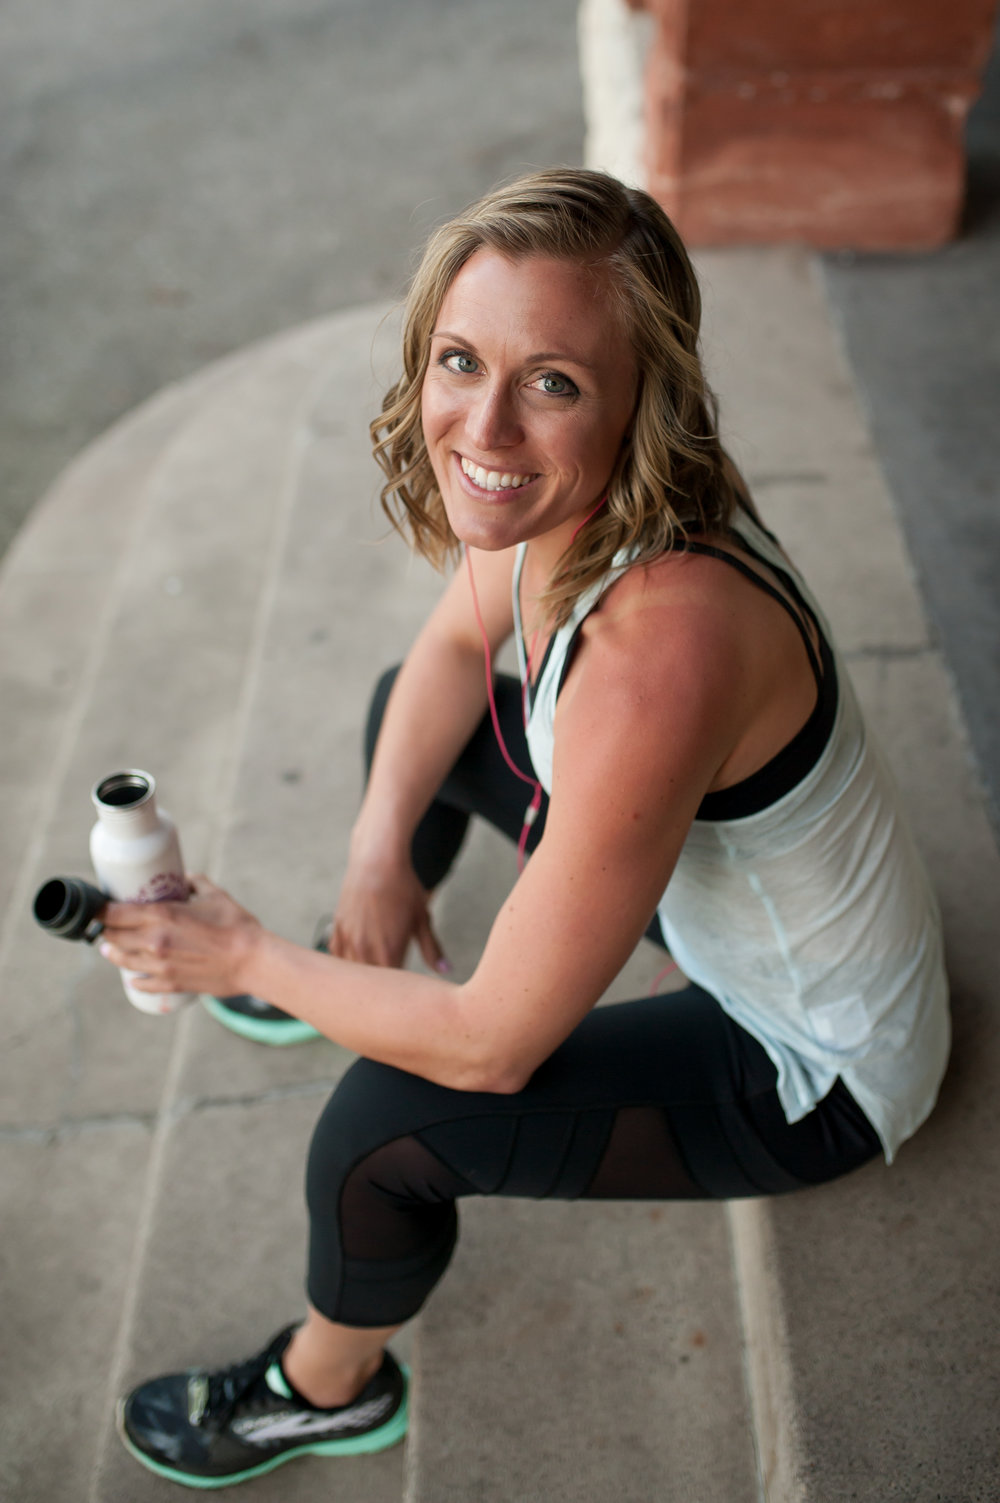 Hey There! - I'm Aubrey Stetter-Hesselberg. I am an enthusiastic Wellness Coach, Personal Trainer, and Group Fitness Instructor by day... passionate mother and wife by night! I live thankfully in the chaos, enjoy serene moments when my gorgeous daughters are loving to one another, and like daytime dates with my hubby! Coffee entices me to rise each morning, inspiration from others keeps me fully-charged throughout the day, and my loving family tucks me in at night. I am truly blessed xoClick below to learn more about me and/or see adorable pics of my family and a snapshot into our chaos!